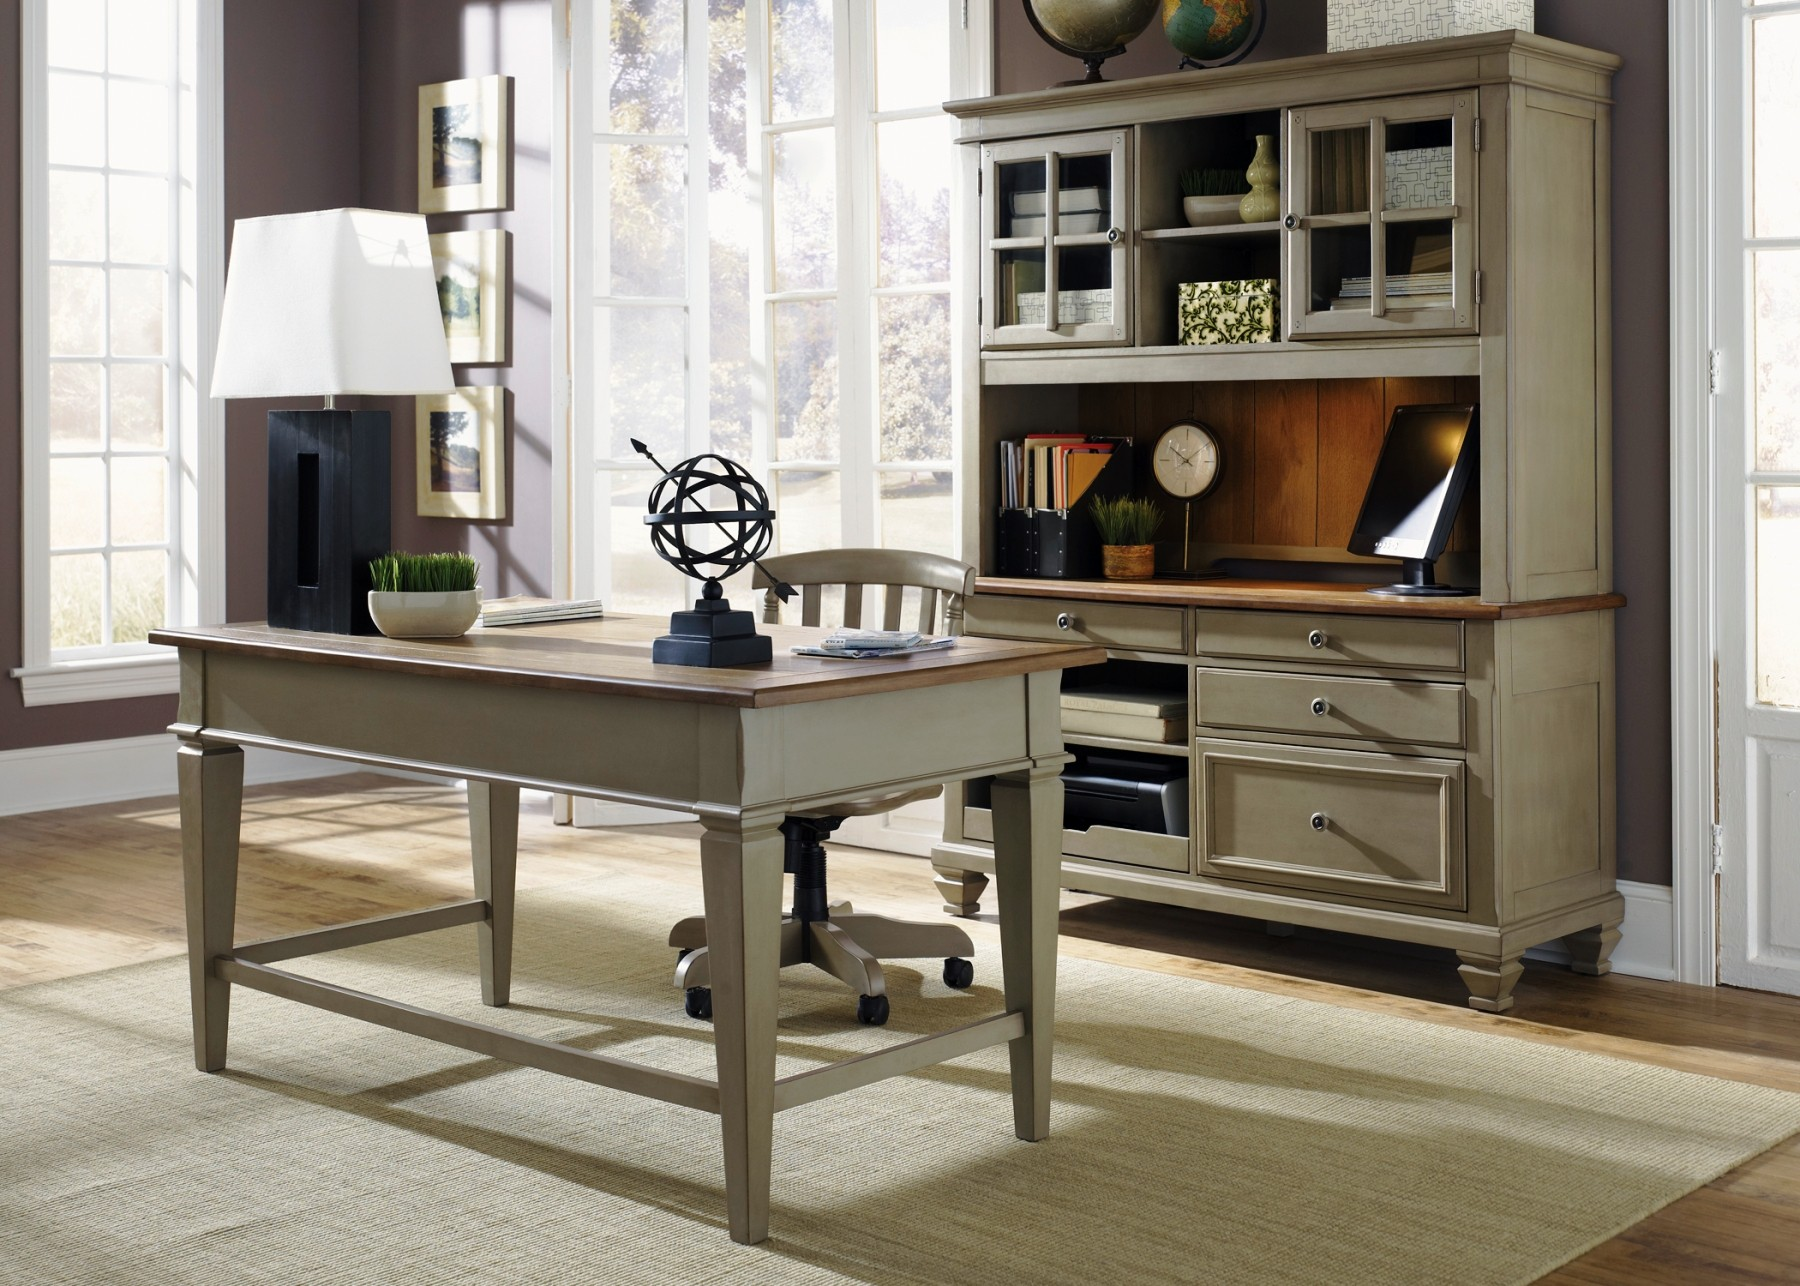 Bungalow Taupe Jr Executive Desk From Liberty 541 Ho105